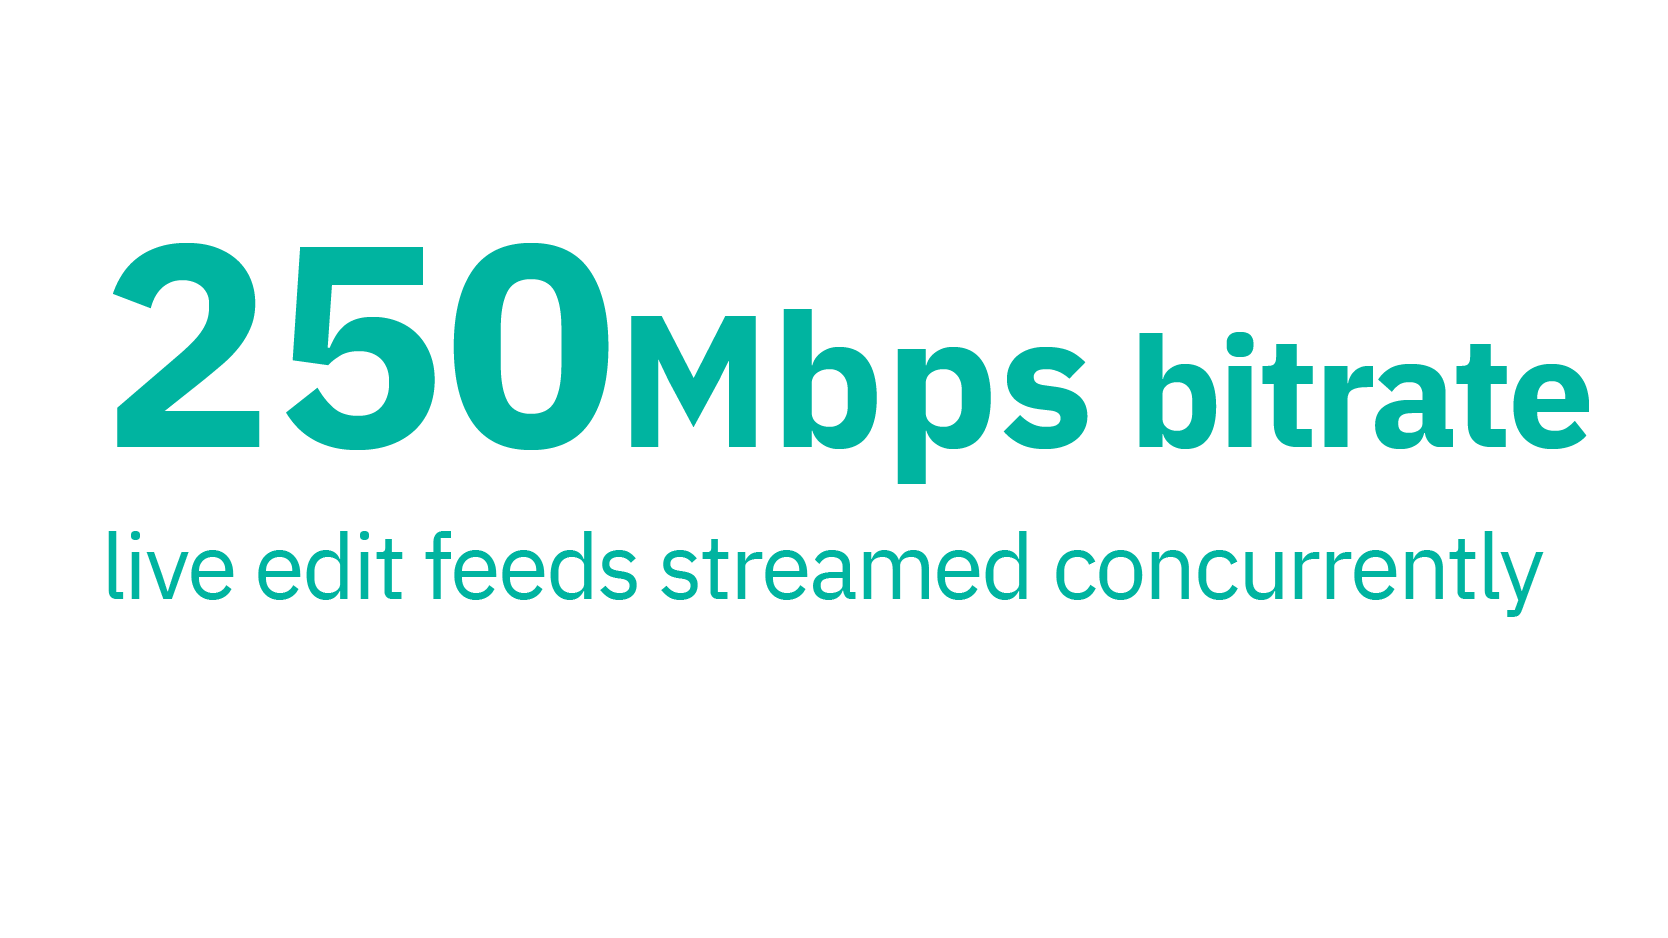 250 Mbps bitrate live edit feeds streamed concurrently